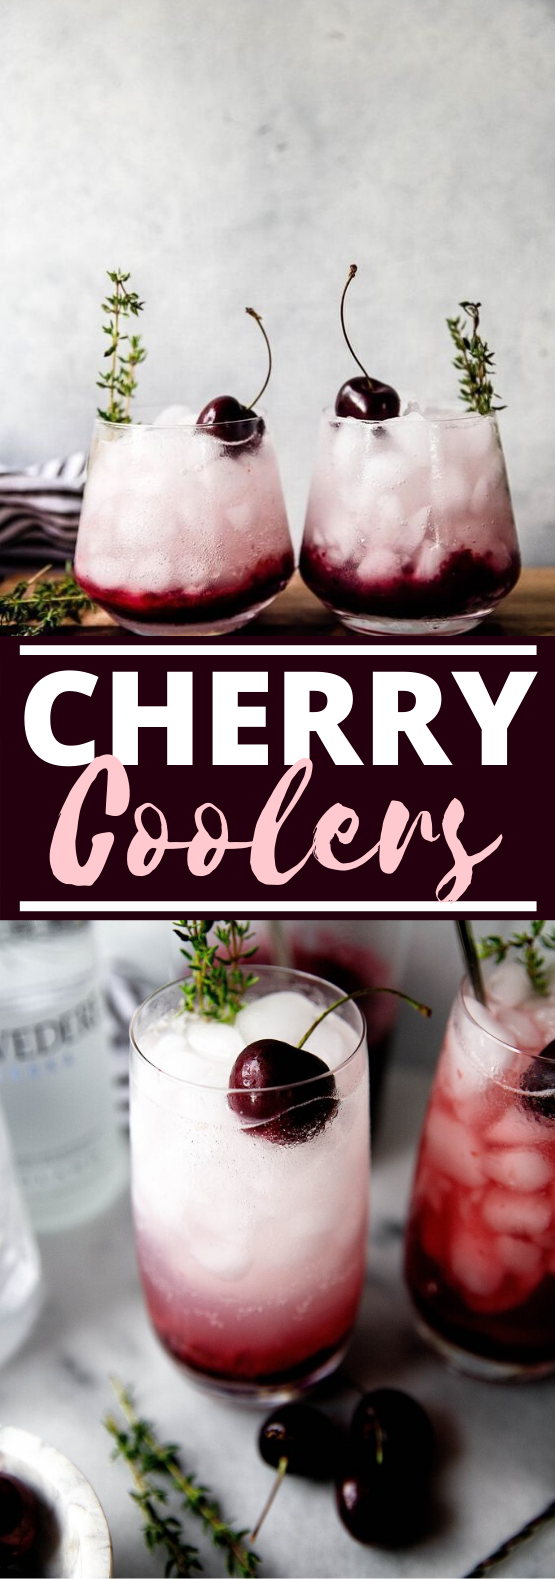 Fresh Cherry Coolers #drinks #alcohol #cocktails #vodka #refreshing